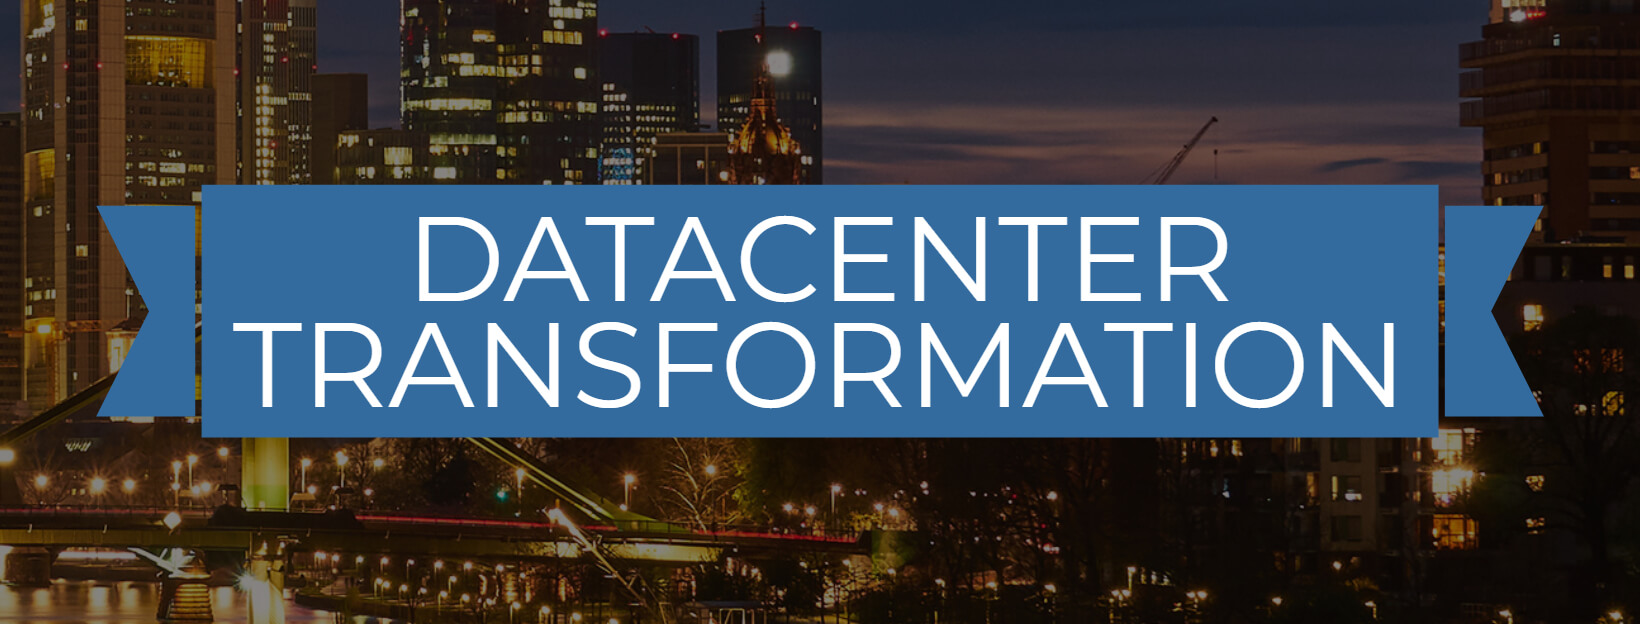 Datacenter Transformation 2017 in Review